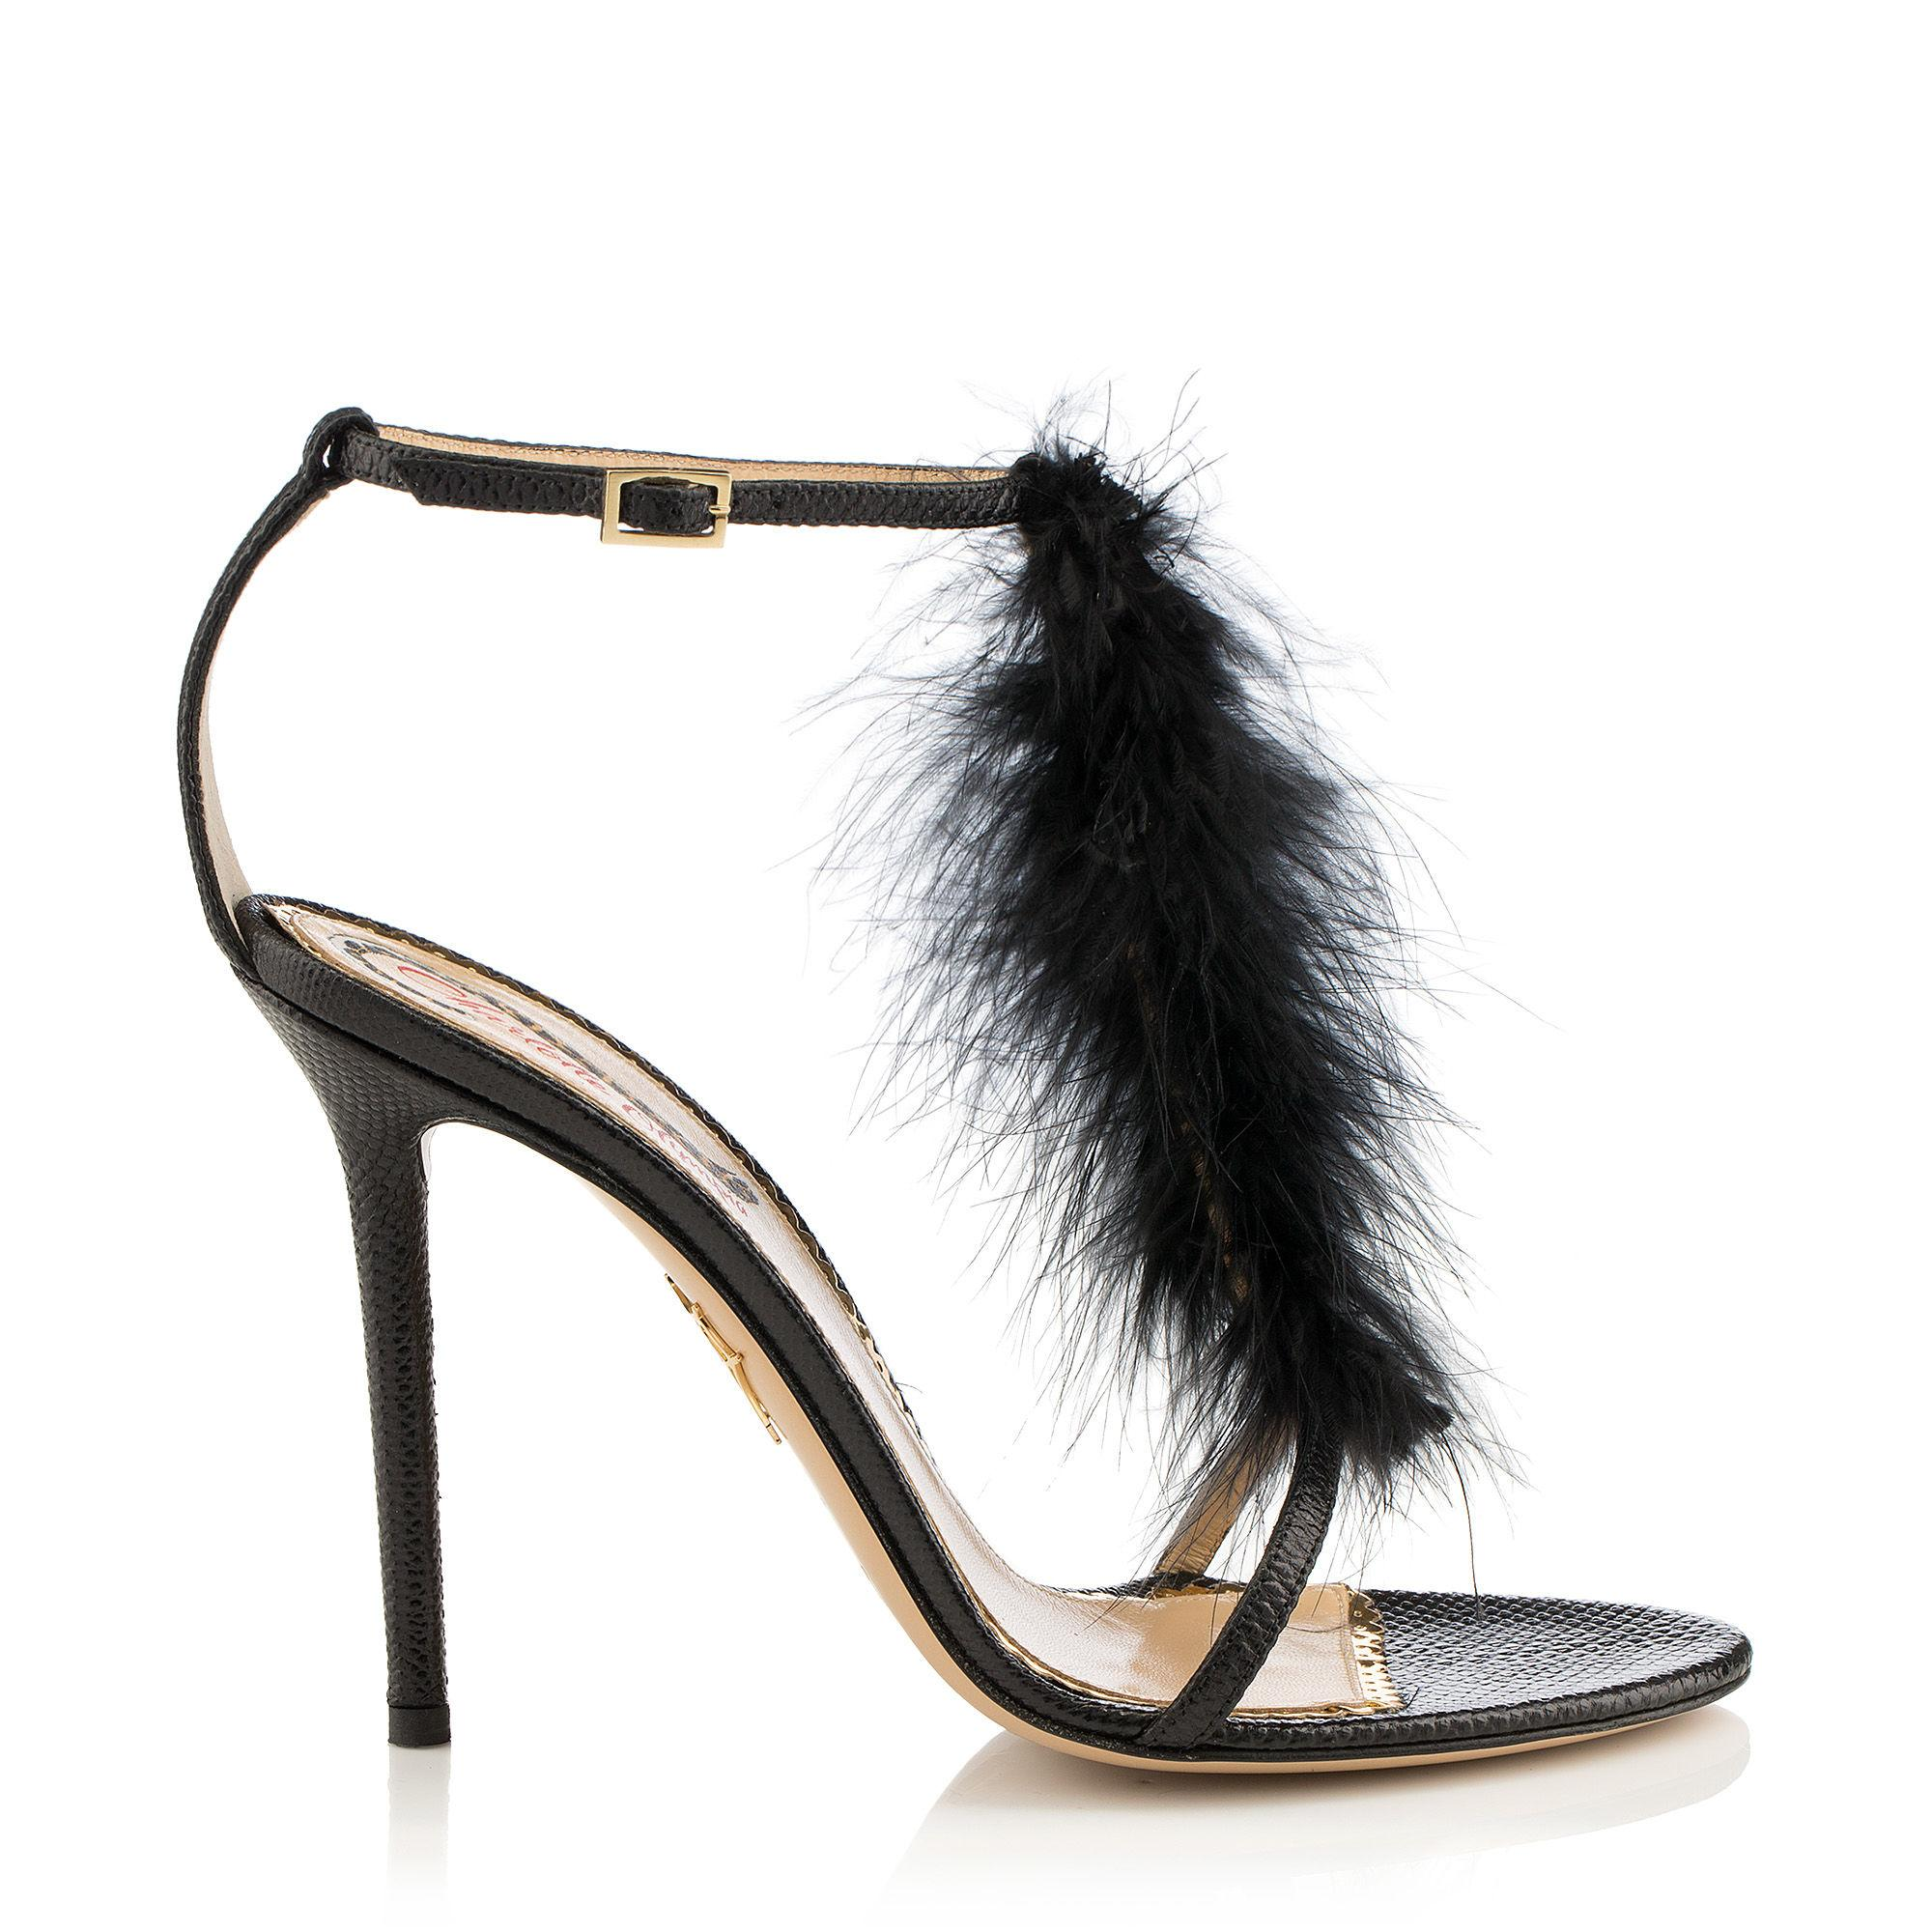 Charlotte Olympia Provocateur In Black